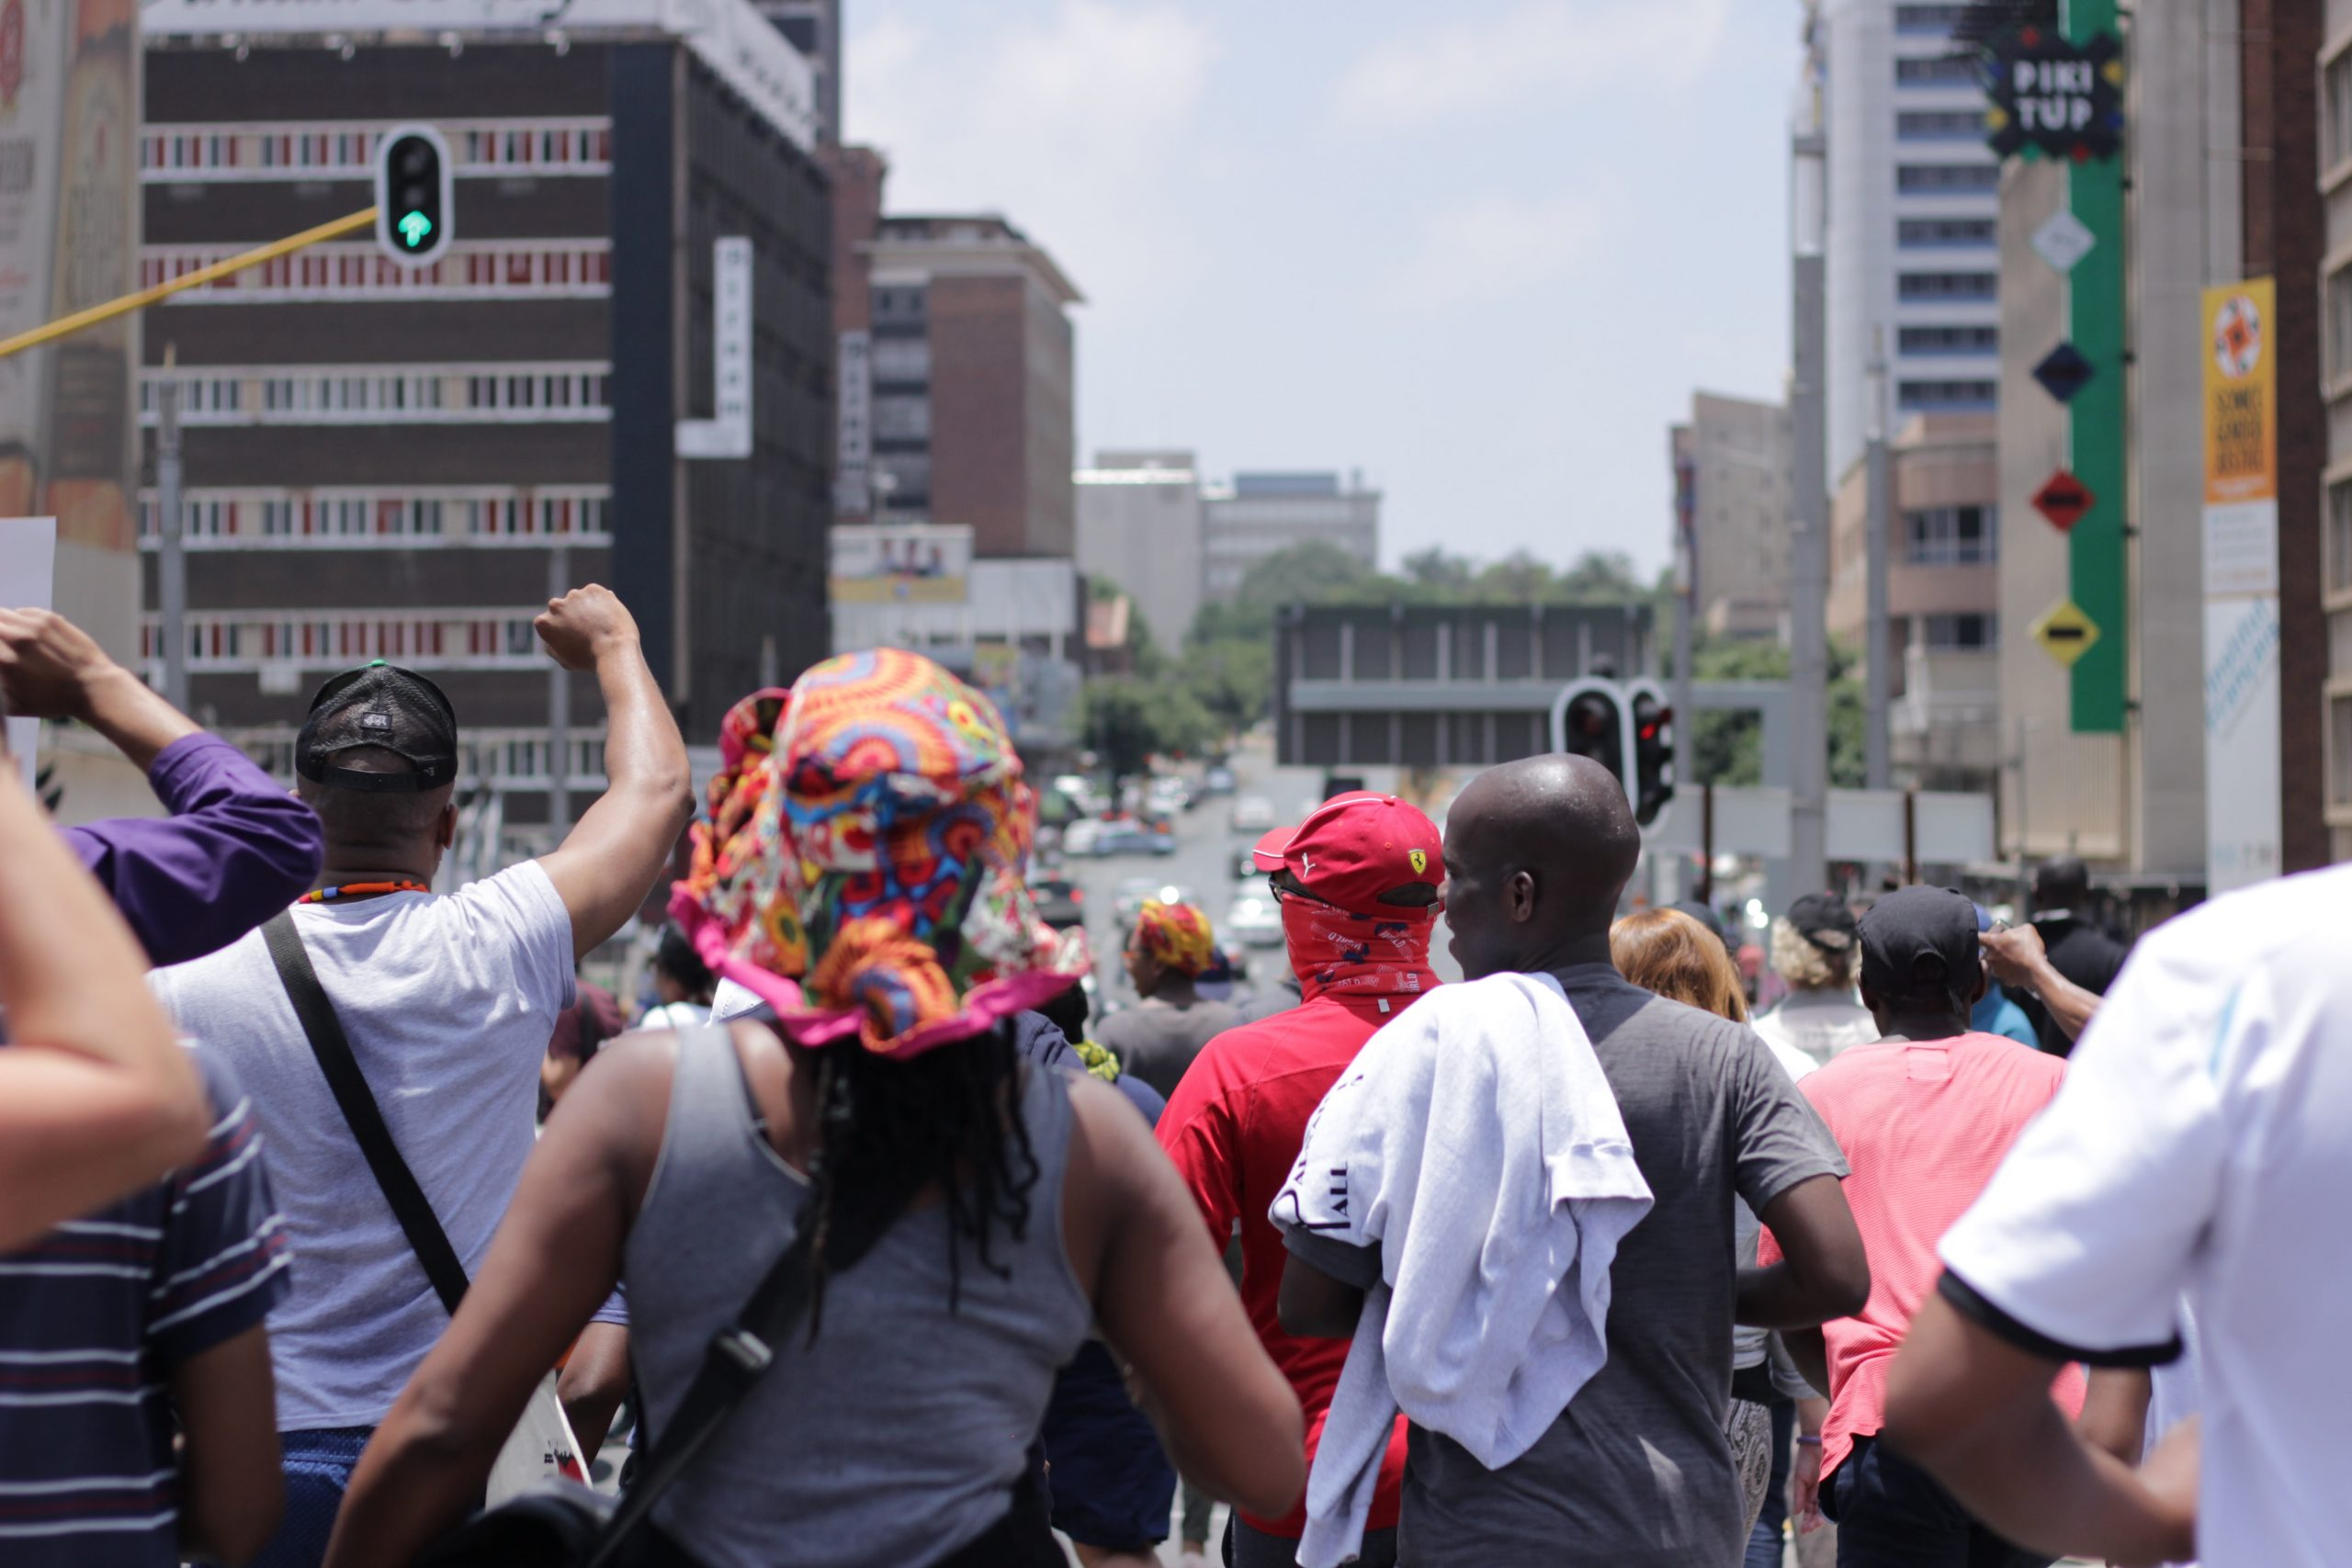 Visionary leadership needed in South Africa to reduce inequality